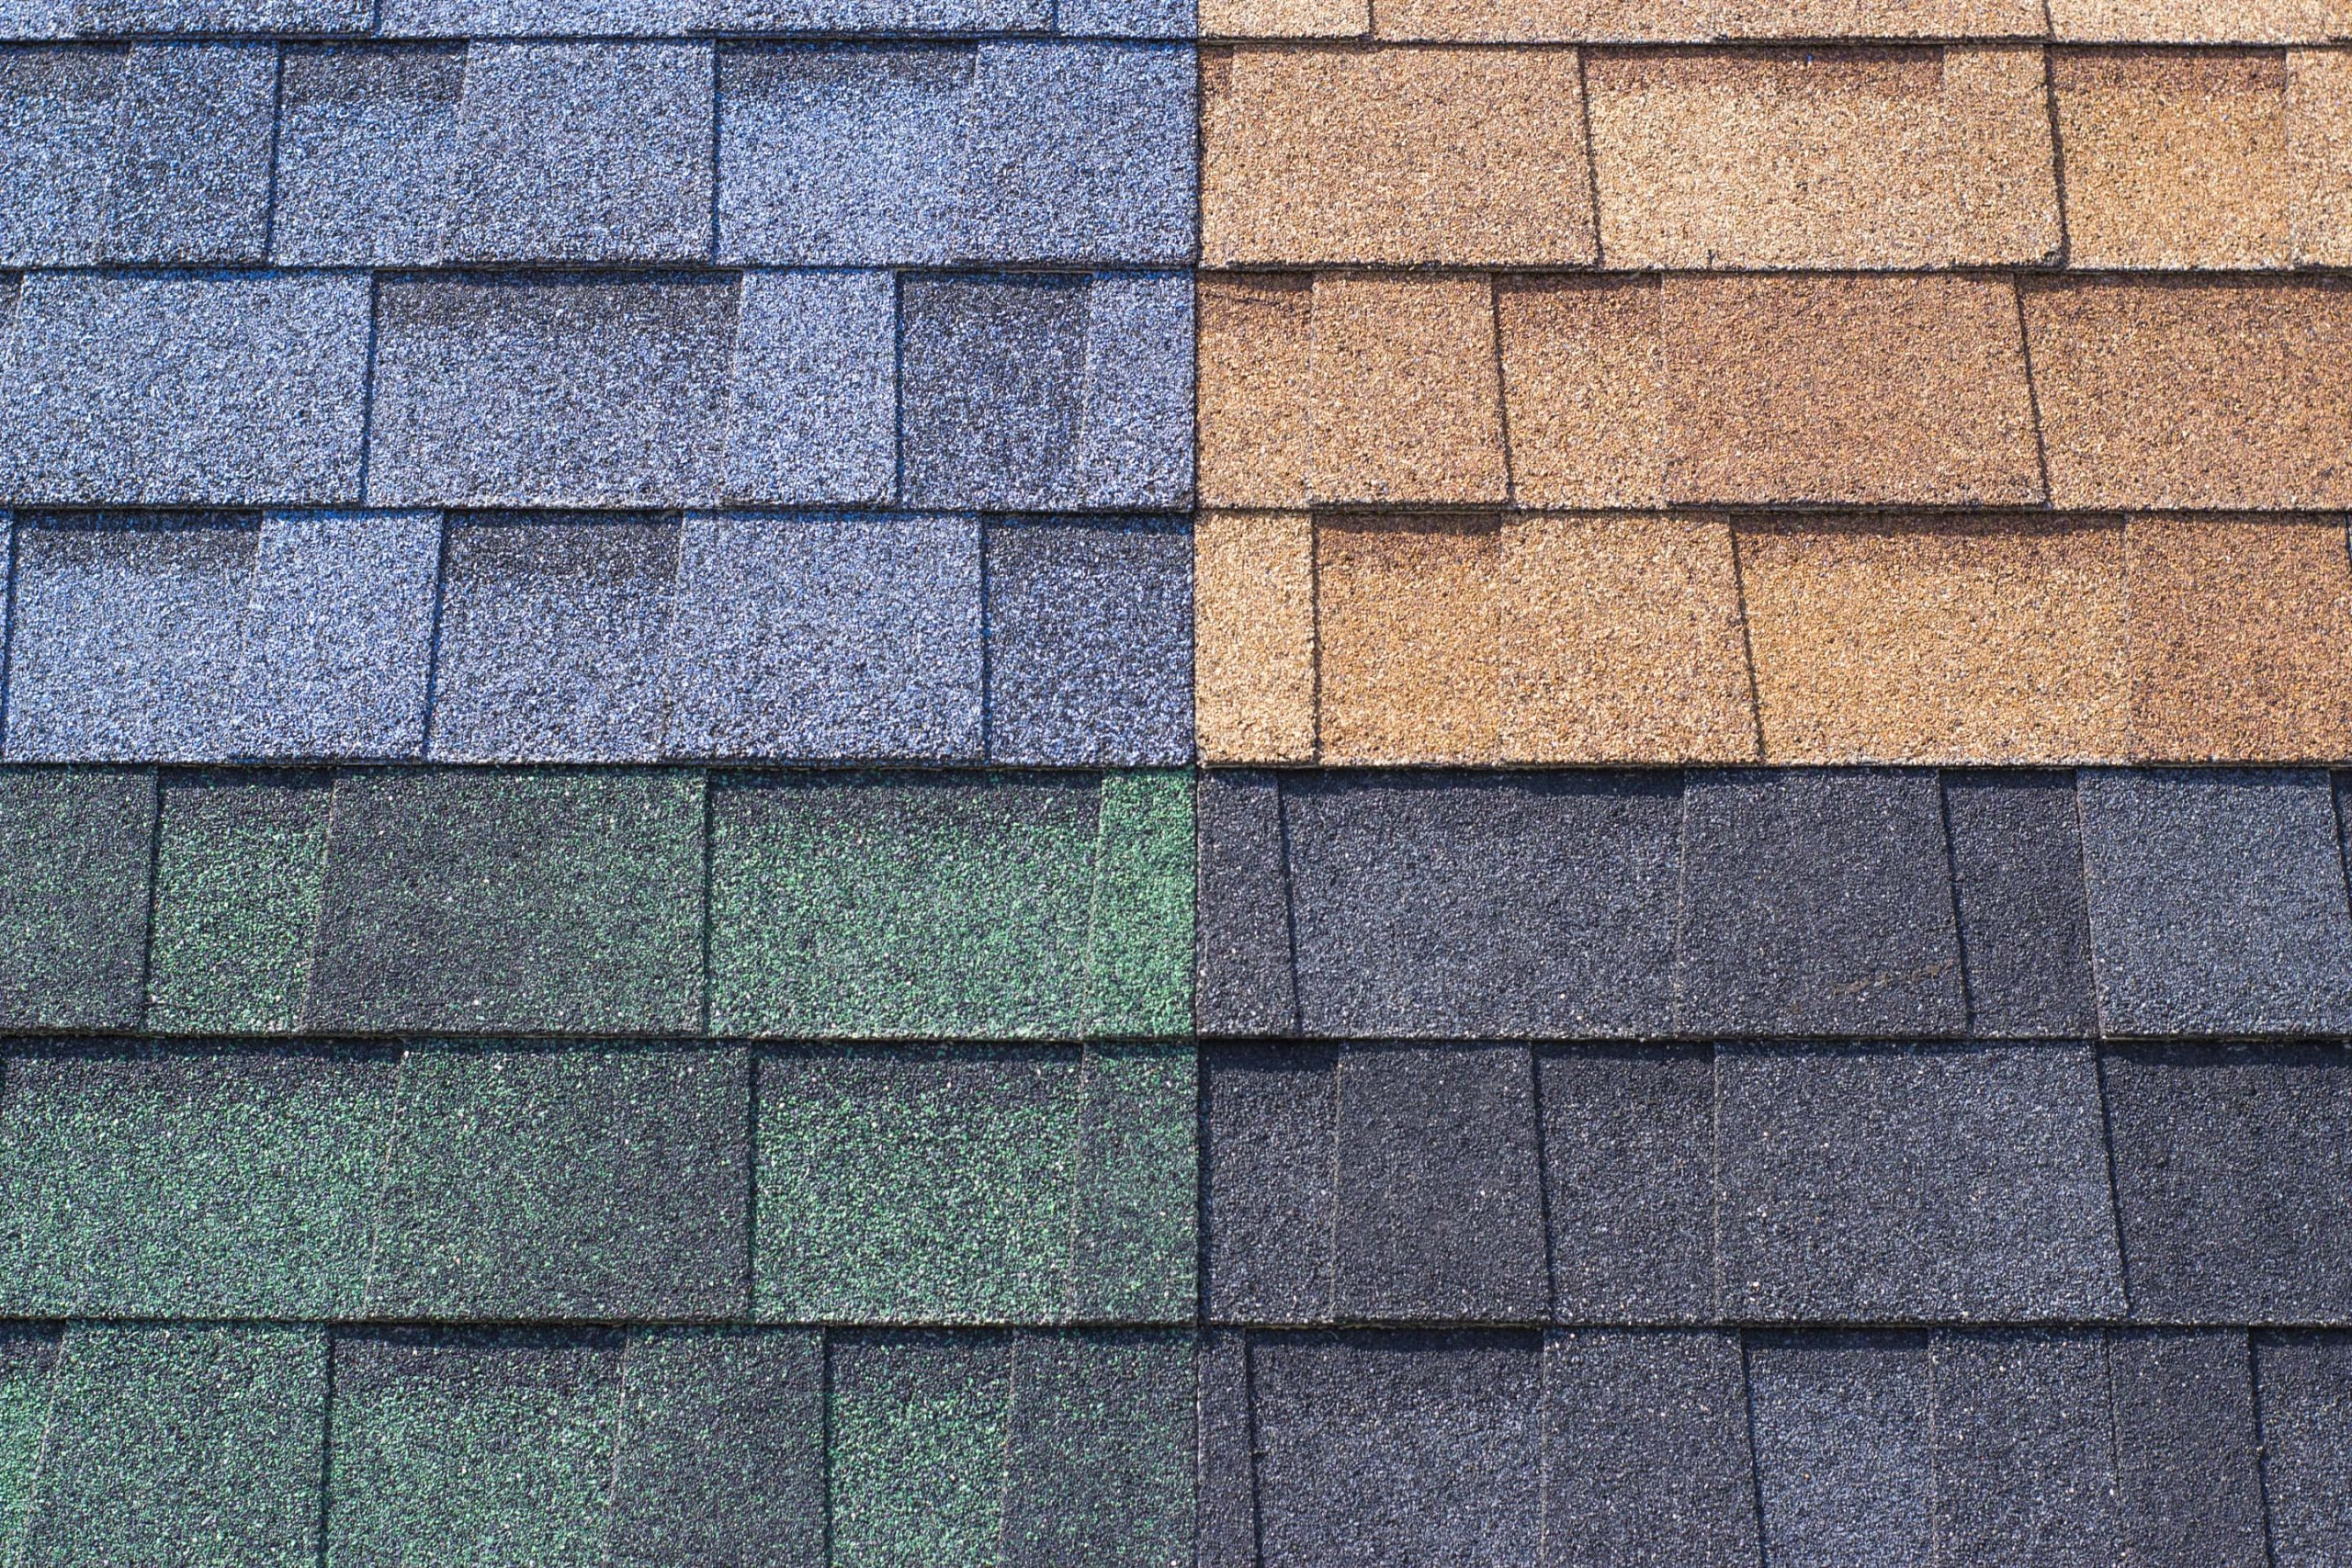 What Color Shingles Fit Your Home?